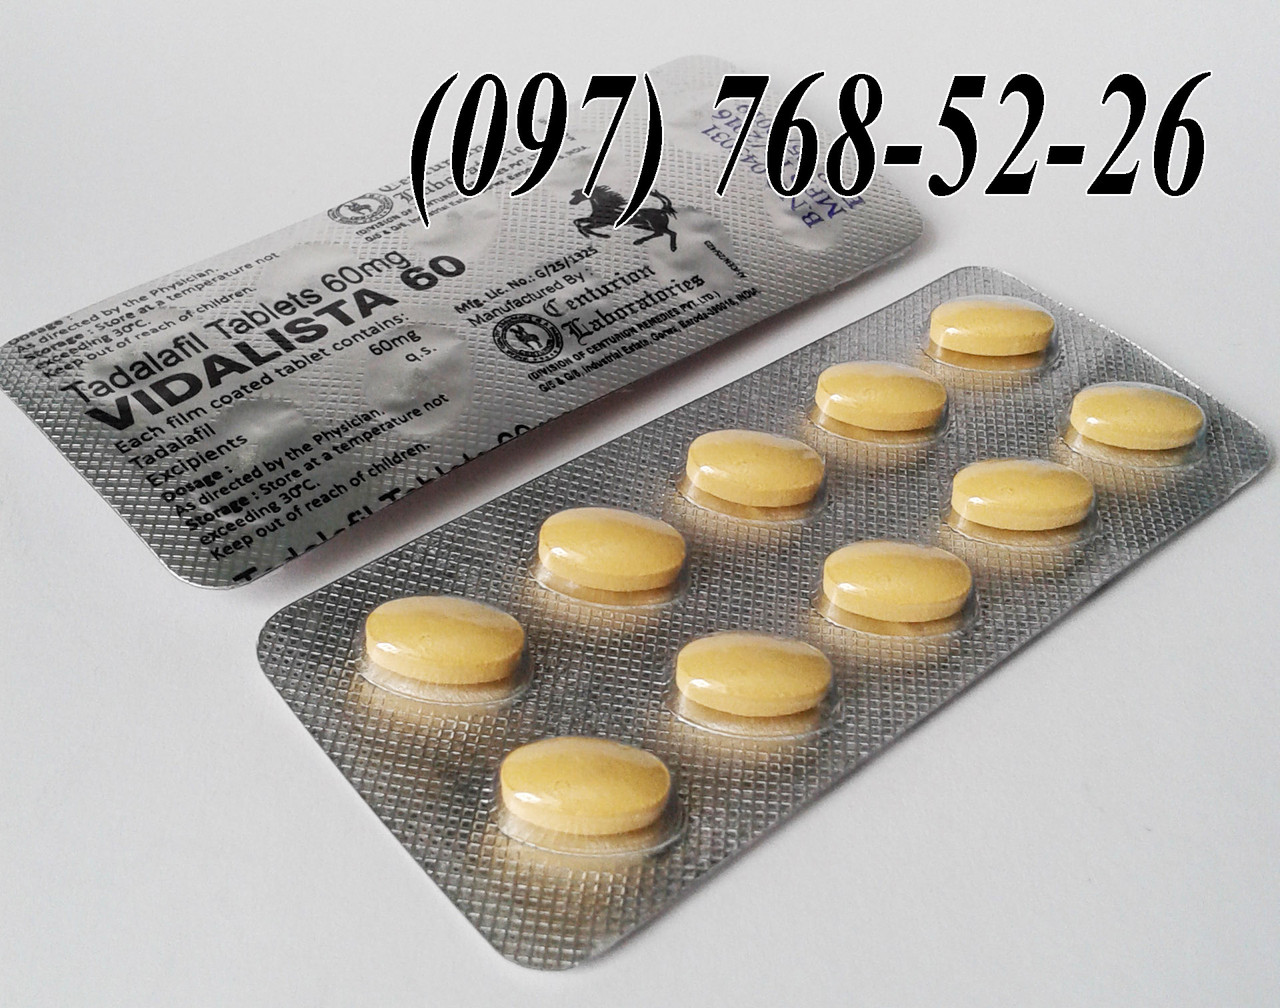 Tadalafil Cialis From India Sale